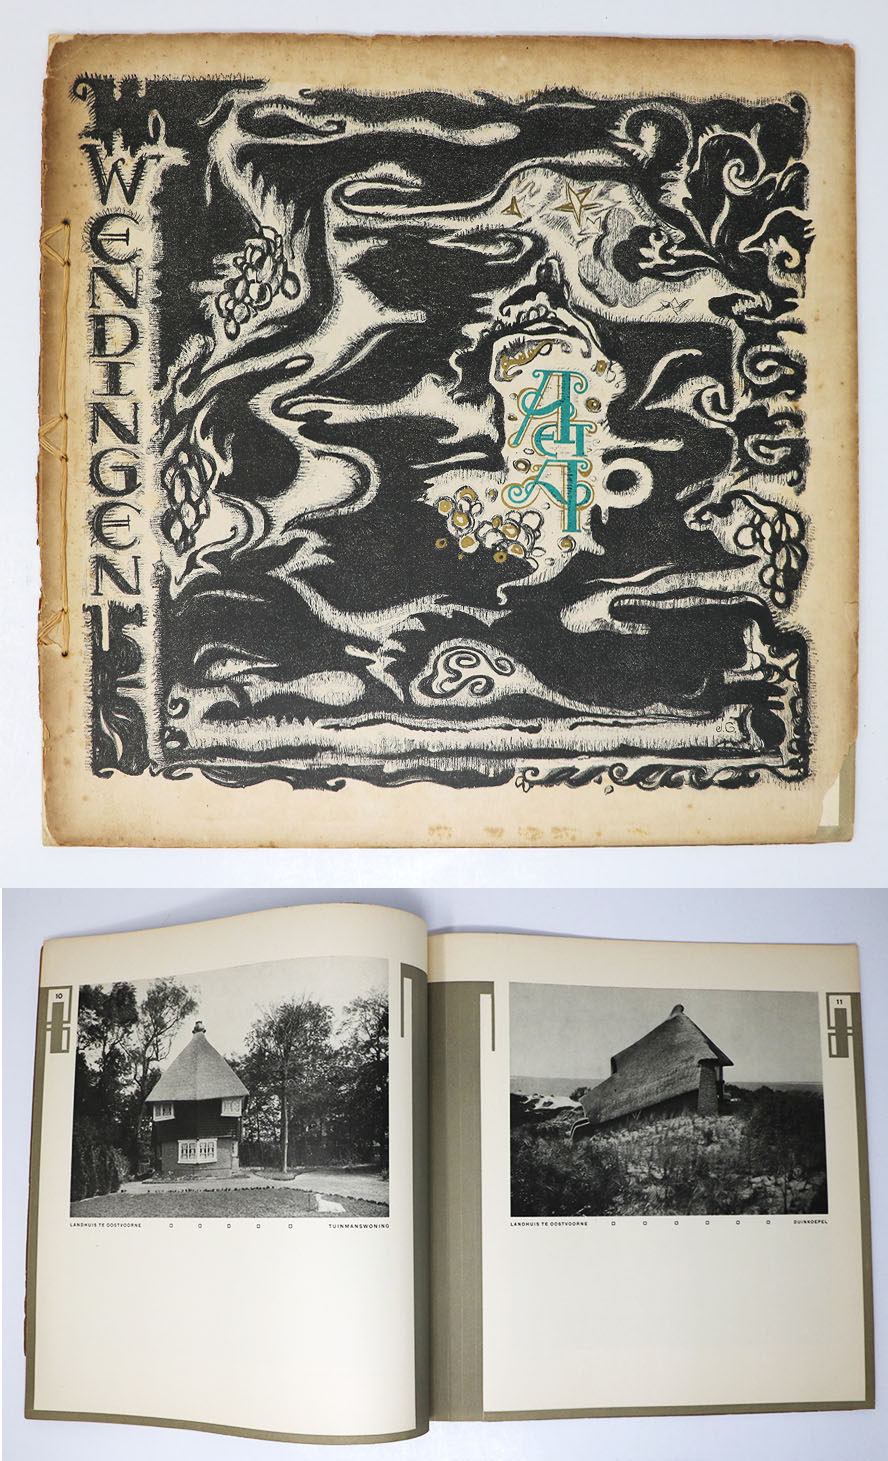 Wendingen :Series 4 1921 no.6: Drawings and photographs of a house in Oostvoorne